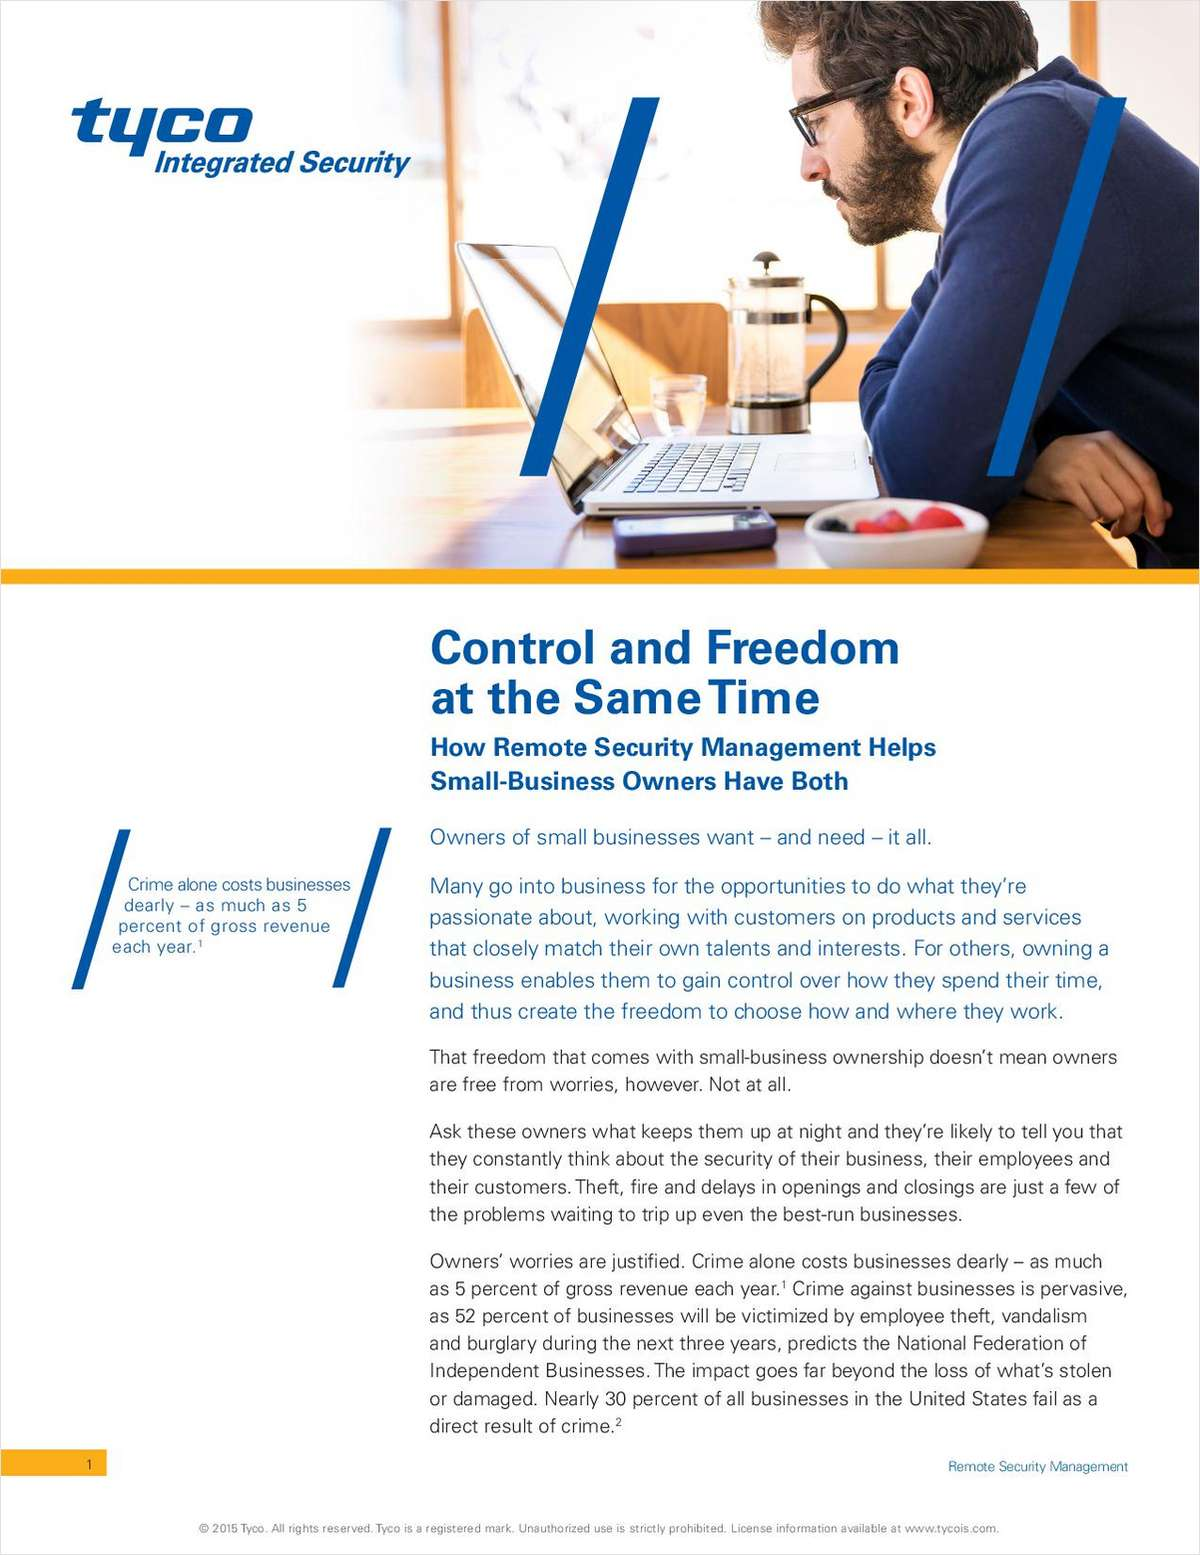 Control and Freedom at the Same Time: How Remote Security Management Helps Small-Business Owners Have Both